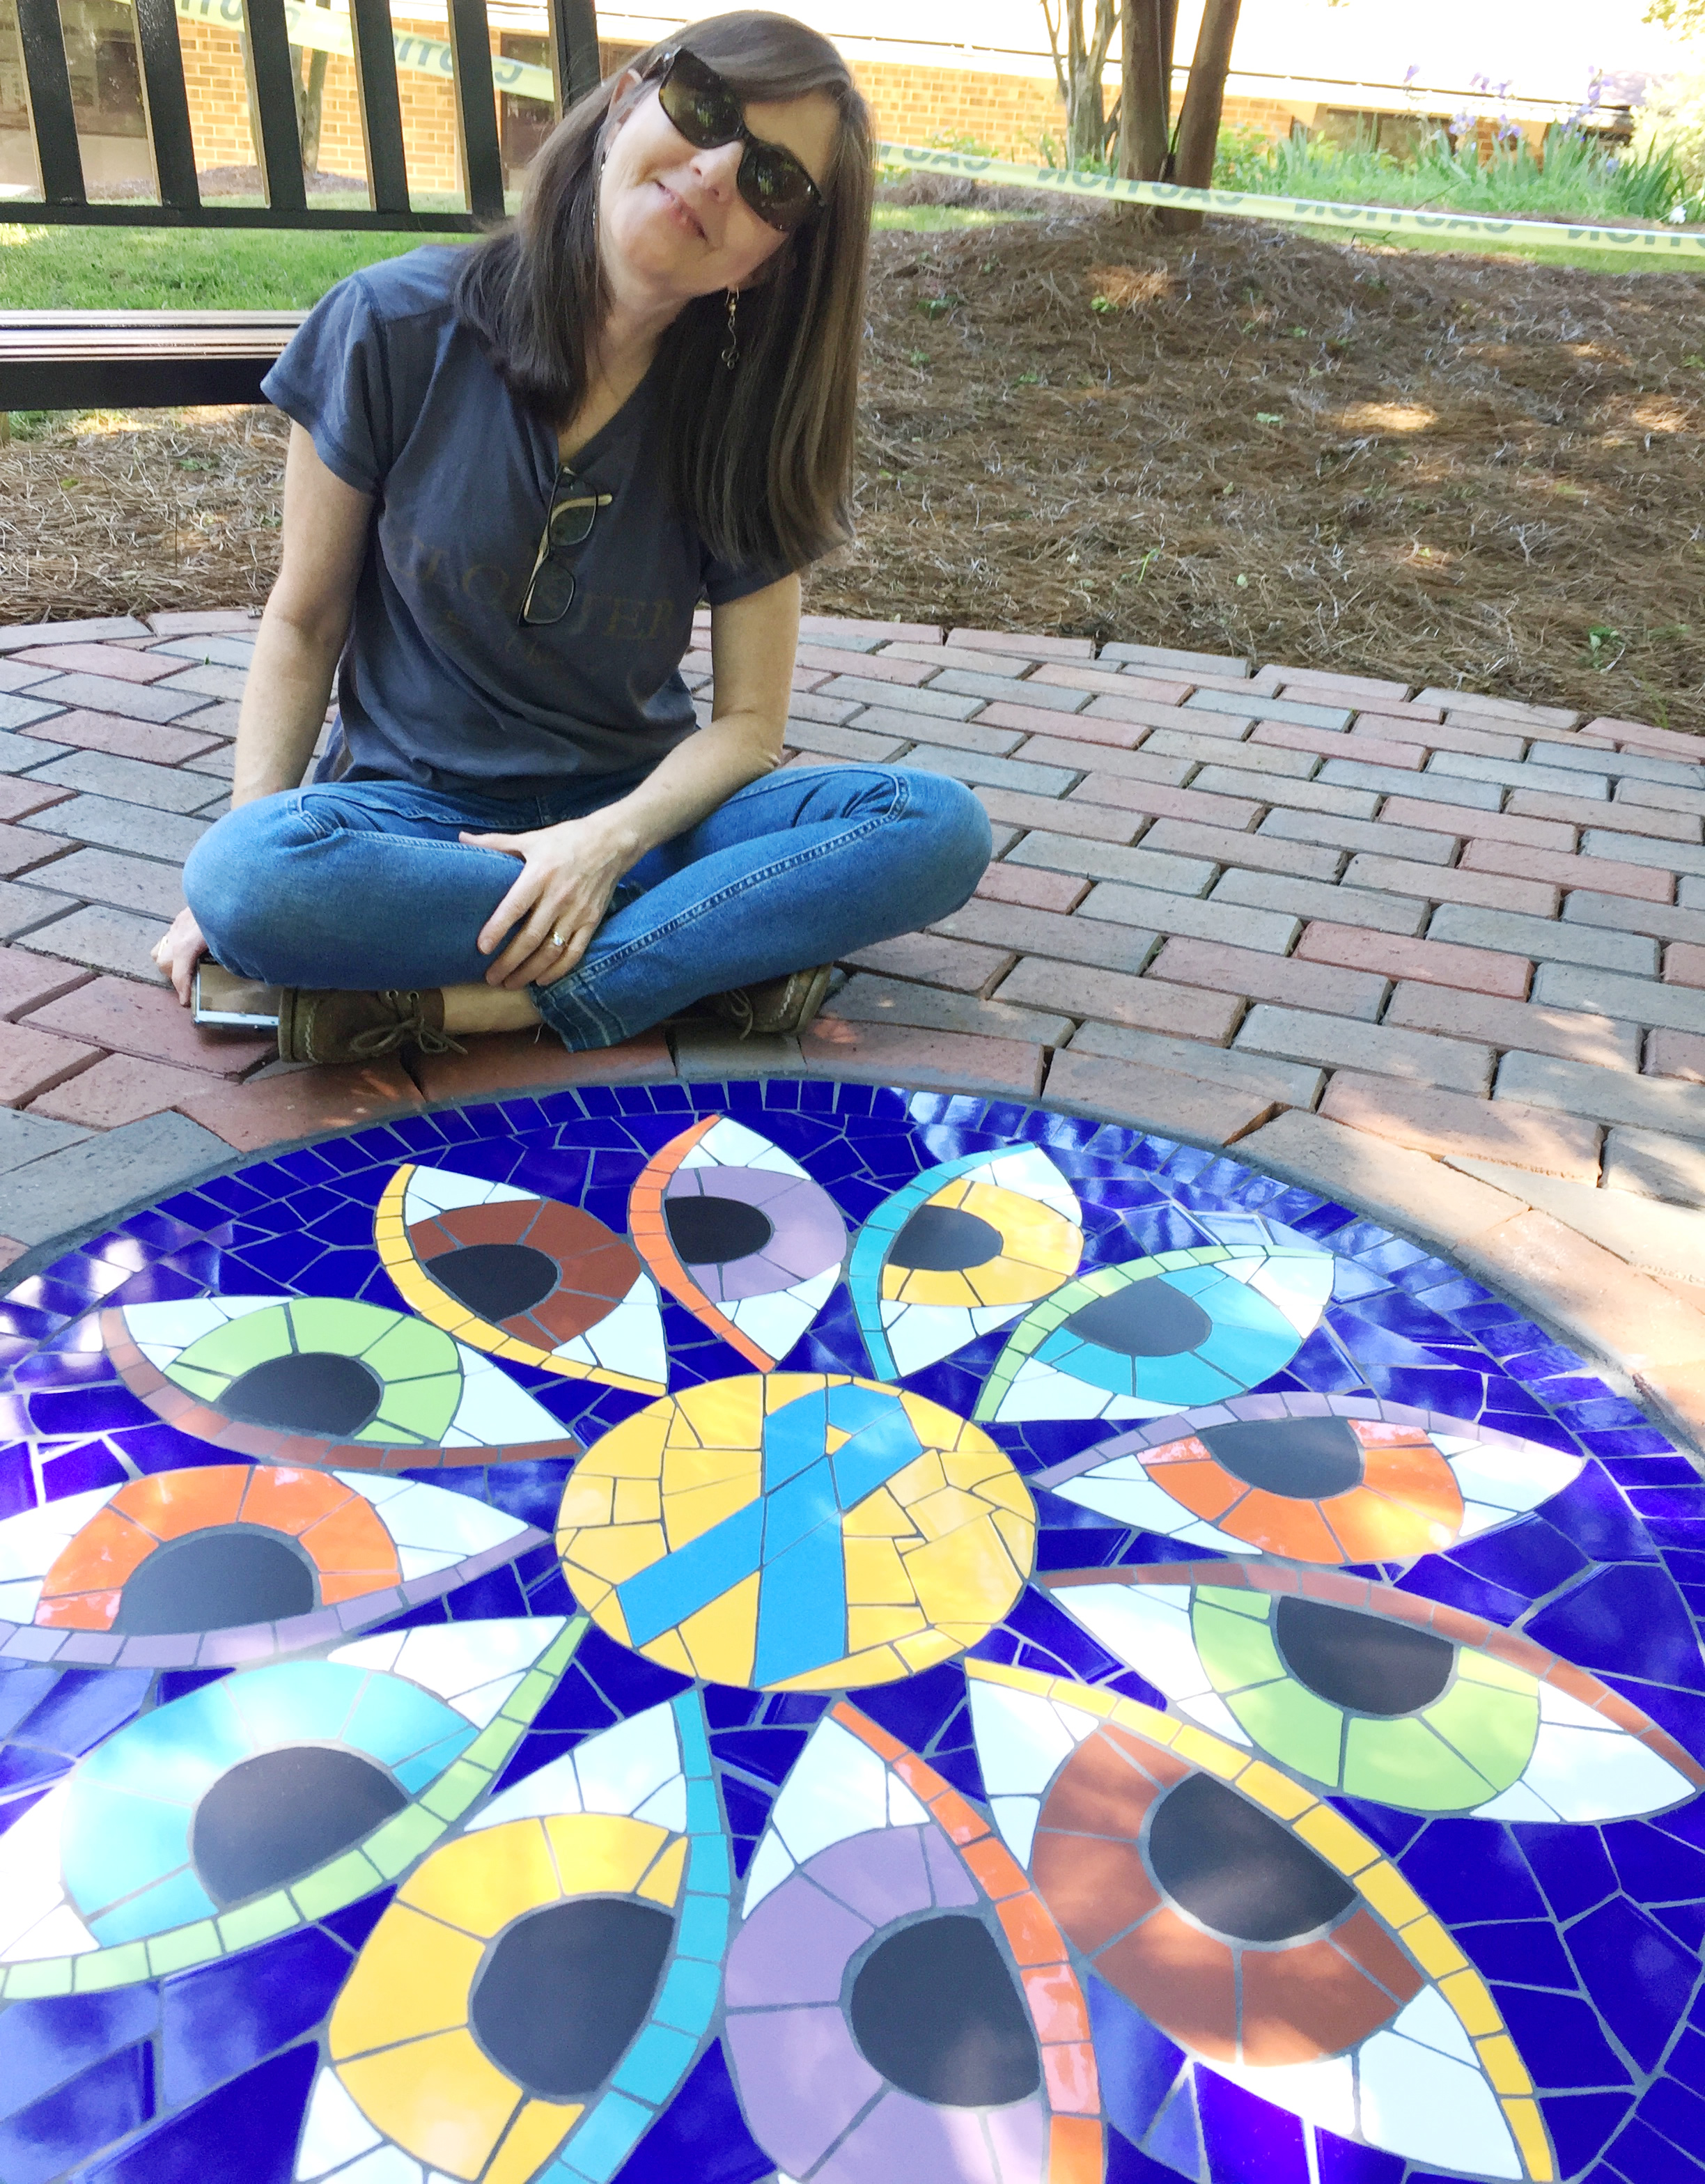 Mandala Final Clean Up with Laura.jpg